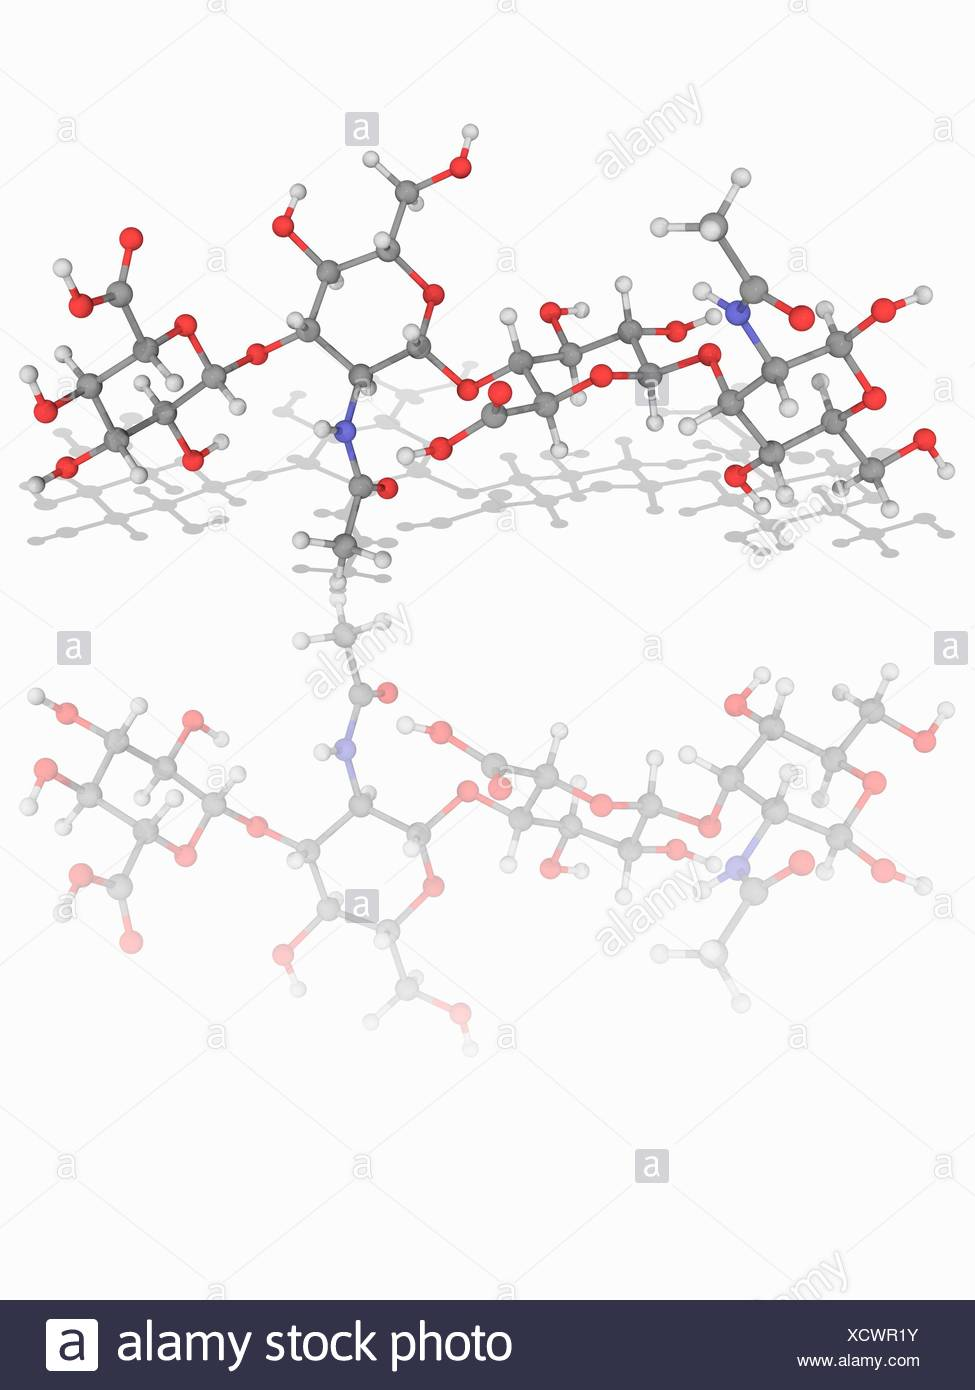 Hyaluronic acid. Molecular model of two units of the glycosaminoglycan polymer hyaluronic acid (C14.H21.N.O11), also known as hyaluronan. A polymer of disaccharides, it is an important component of articular cartilage and of skin, where it is involved in tissue repair. Atoms are represented as spheres and are colour-coded: carbon (grey), hydrogen (white), nitrogen (blue) and oxygen (red). Illustration. - Stock Image